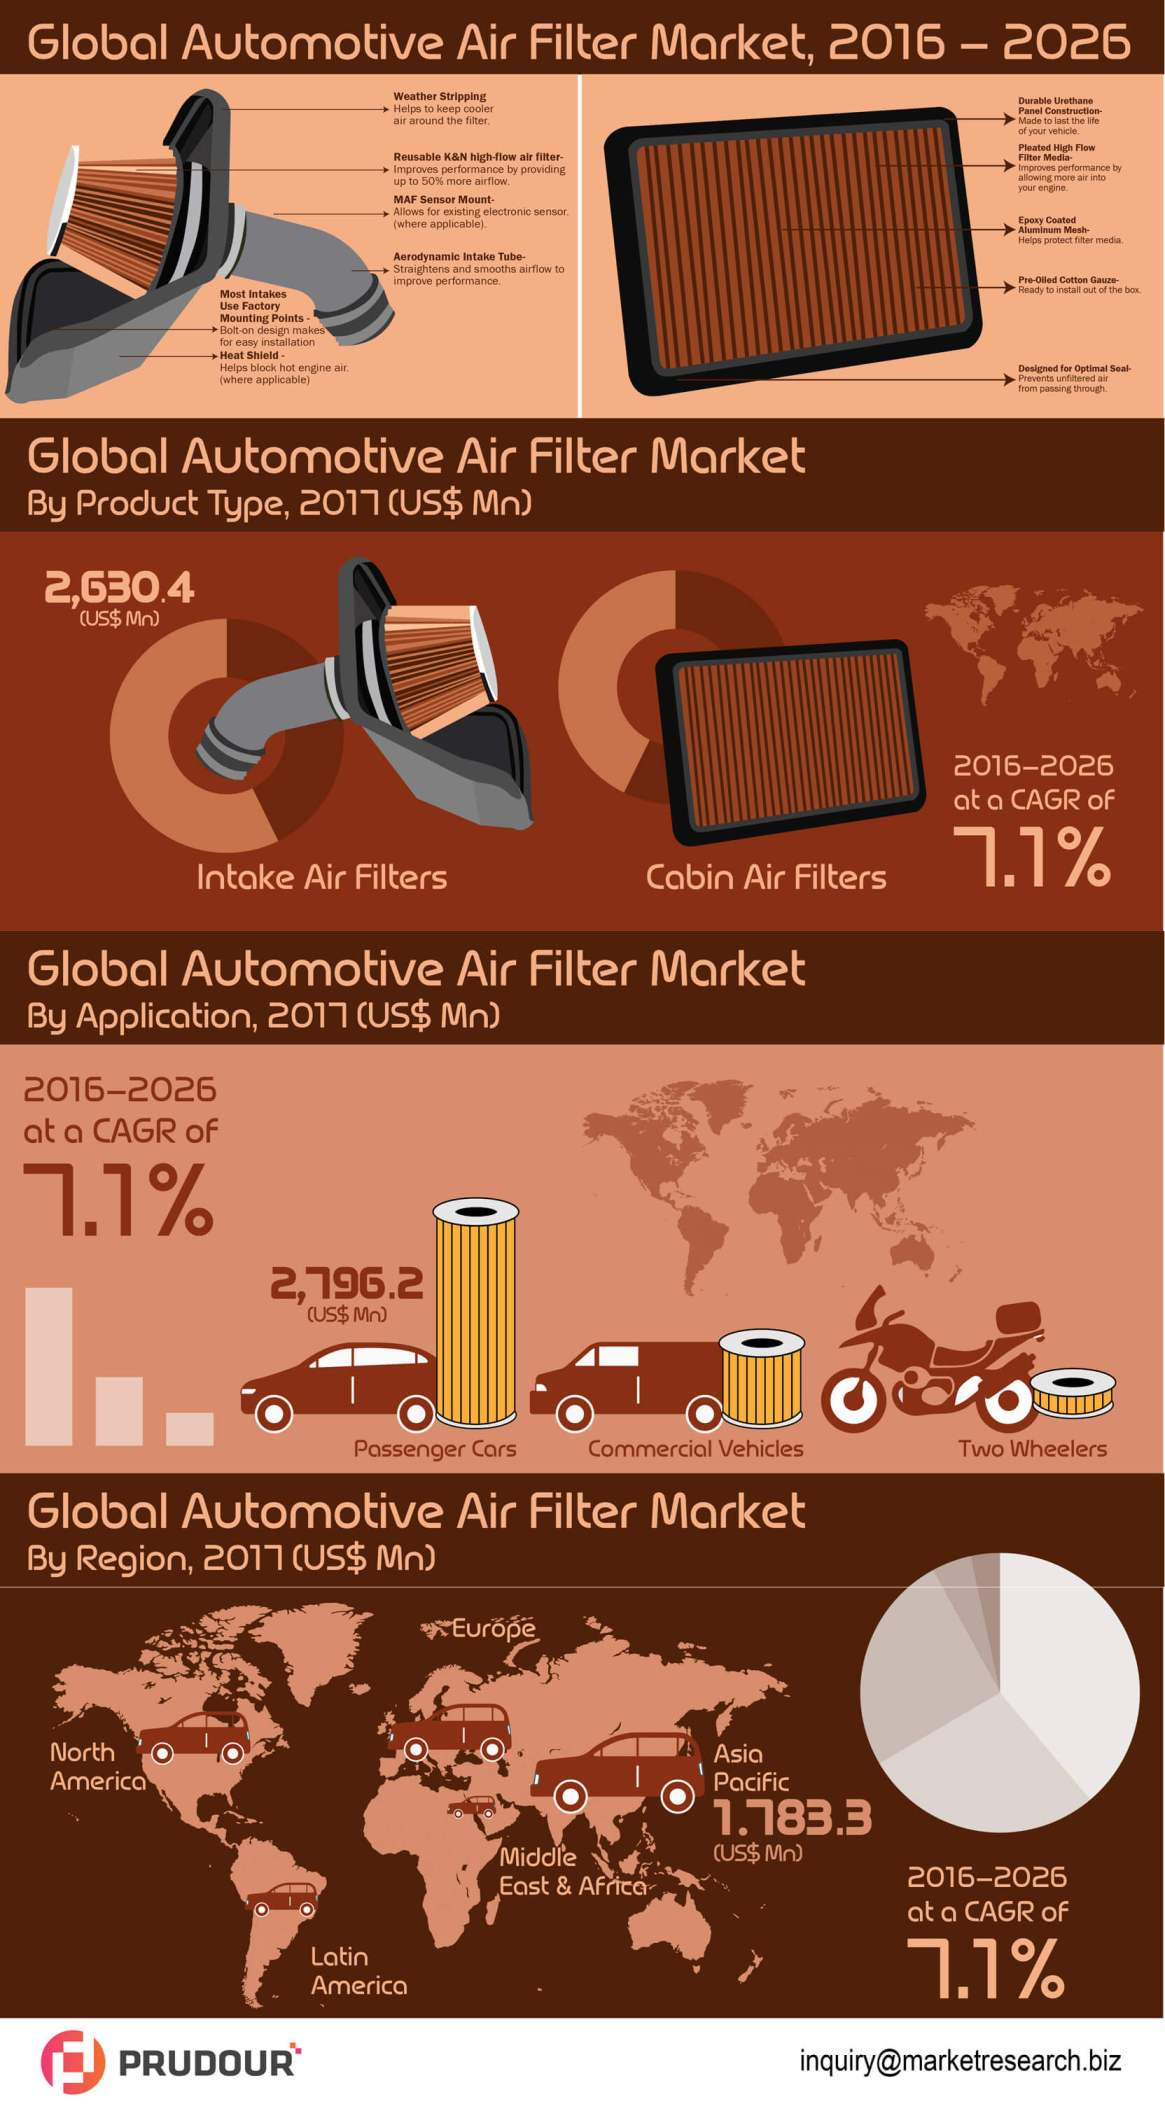 To Register CAGR Of 7.1%: Global Automotive Air Filter Market about to hit CAGR of 7.1% from 2017 to 2026